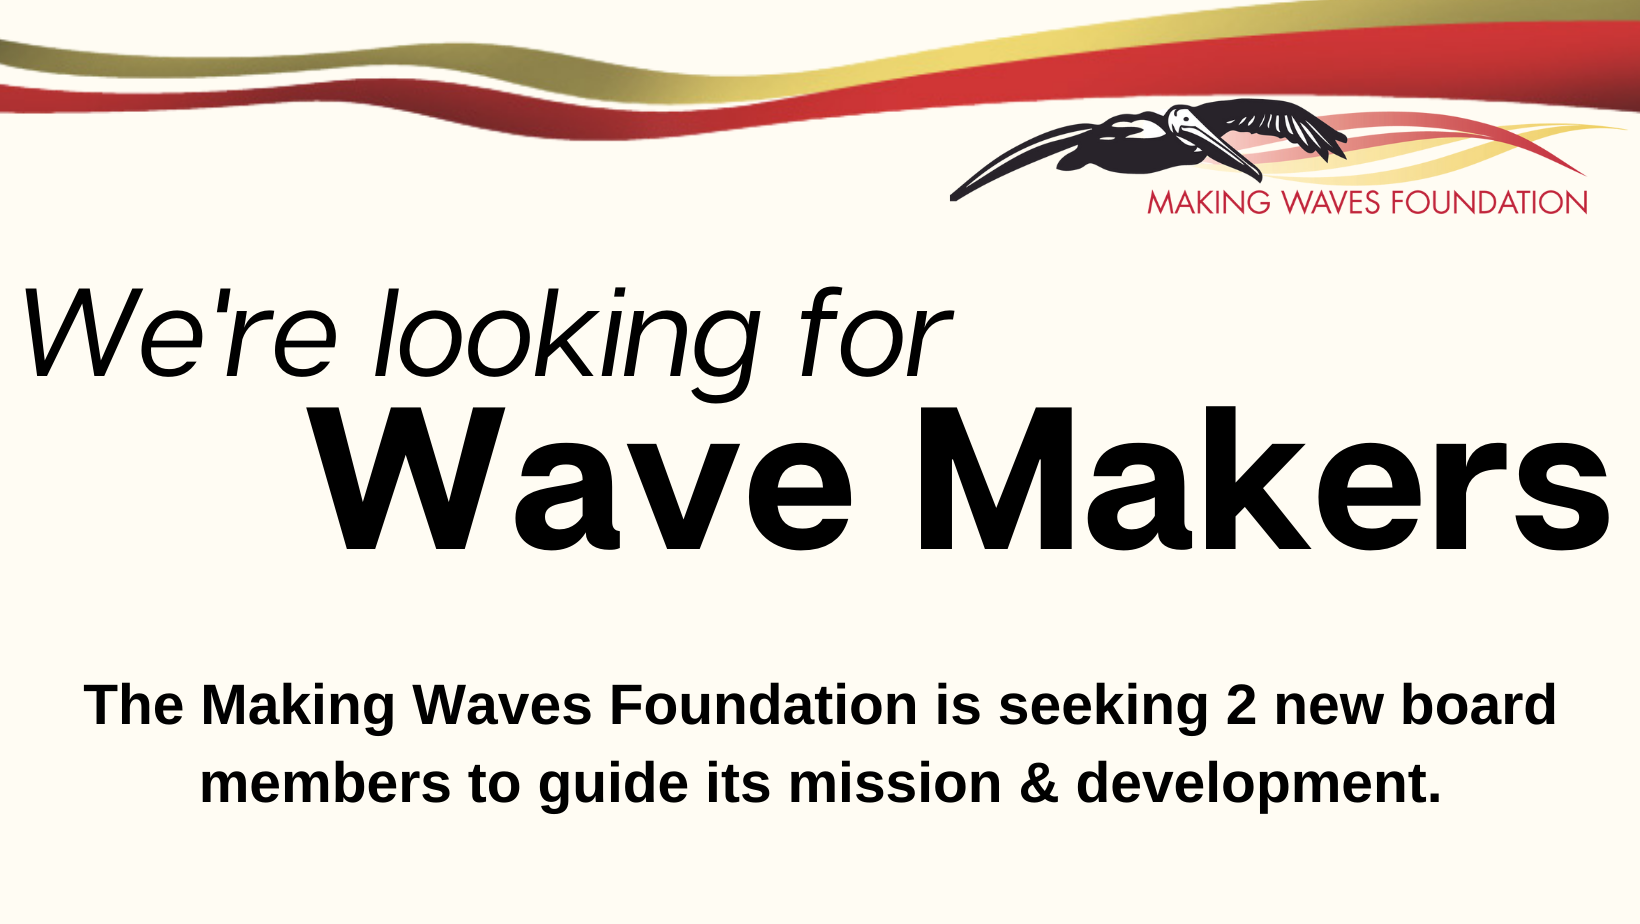 The Wave Transit pelican sits on the top right of this banner image. The logo for the Making Waves Foundation, fancy red and gold waves, and black text on a light yellow background. The text reads: We're Looking for Wave Makers! The Making Waves Foundation is seeking 2 new board members to guide its mission & development.